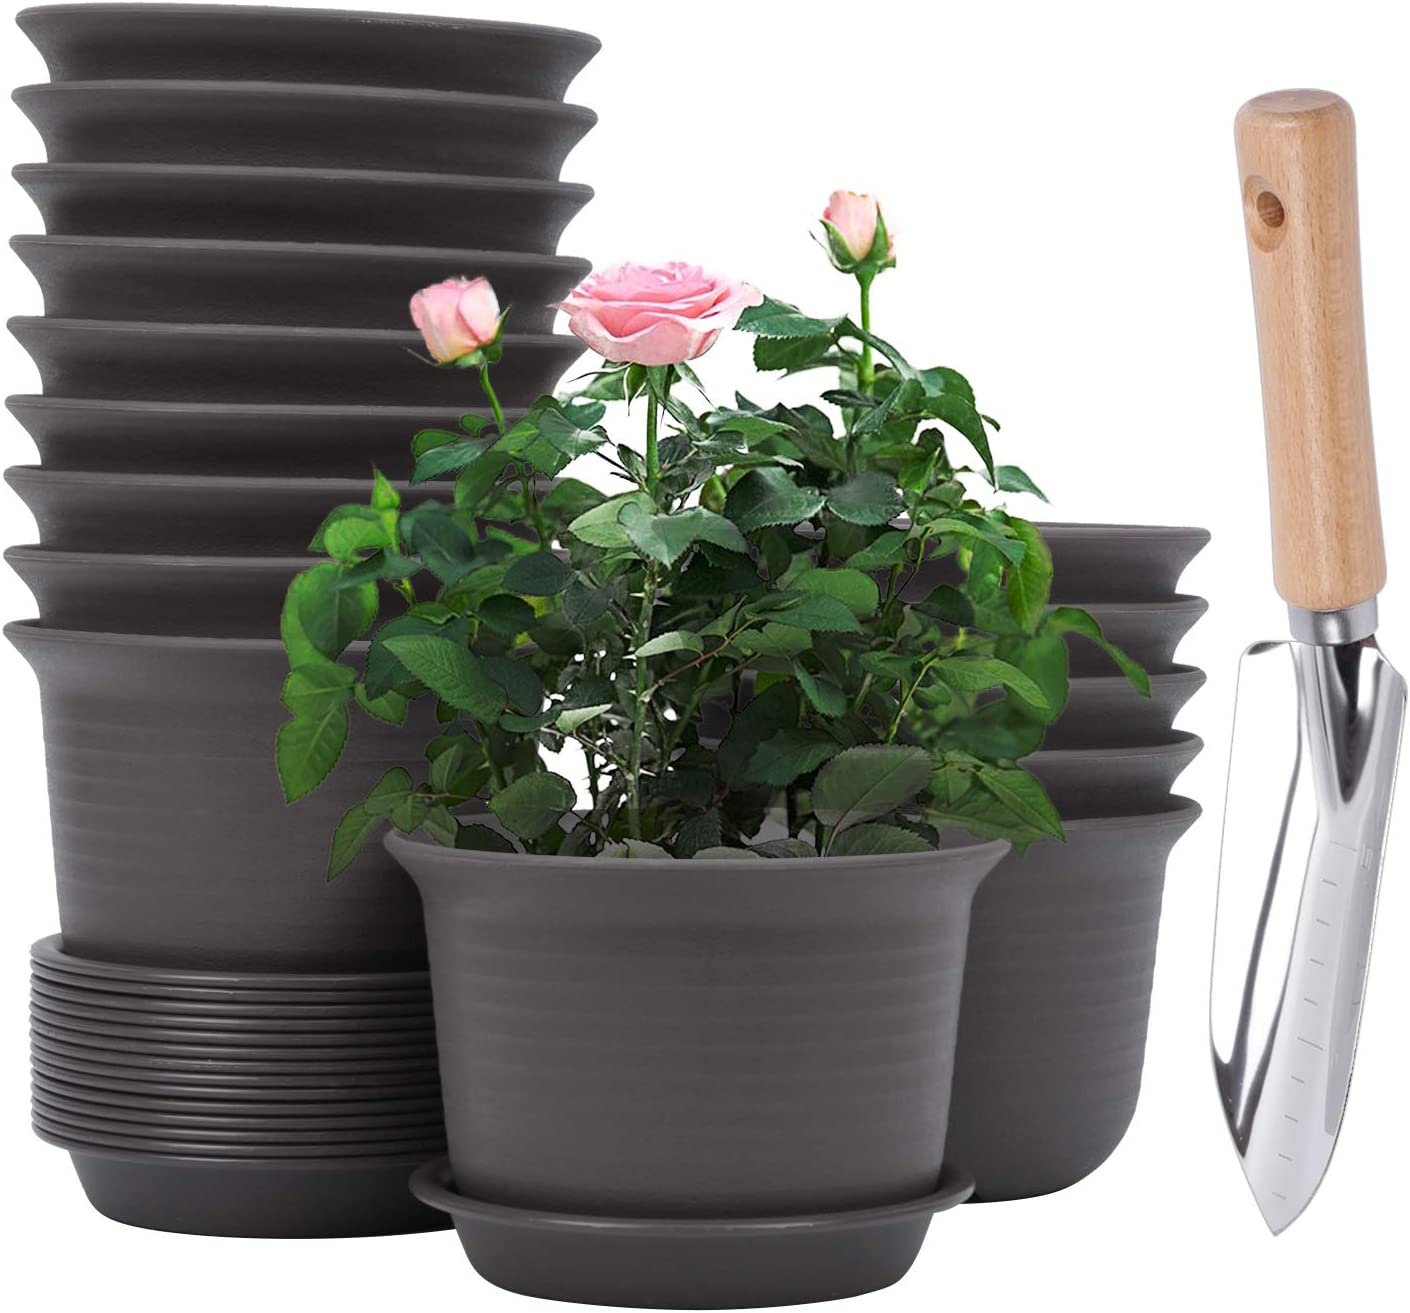 6 Inch Plant Pot with Drainage Hole and Tray, Set of 16, 15PCS Flower Pots and 1 PC Multi Use Garden Trowel, Indoor Outdoor Plastic Planters, Herbs Seedling Succulents Pot (Brown)